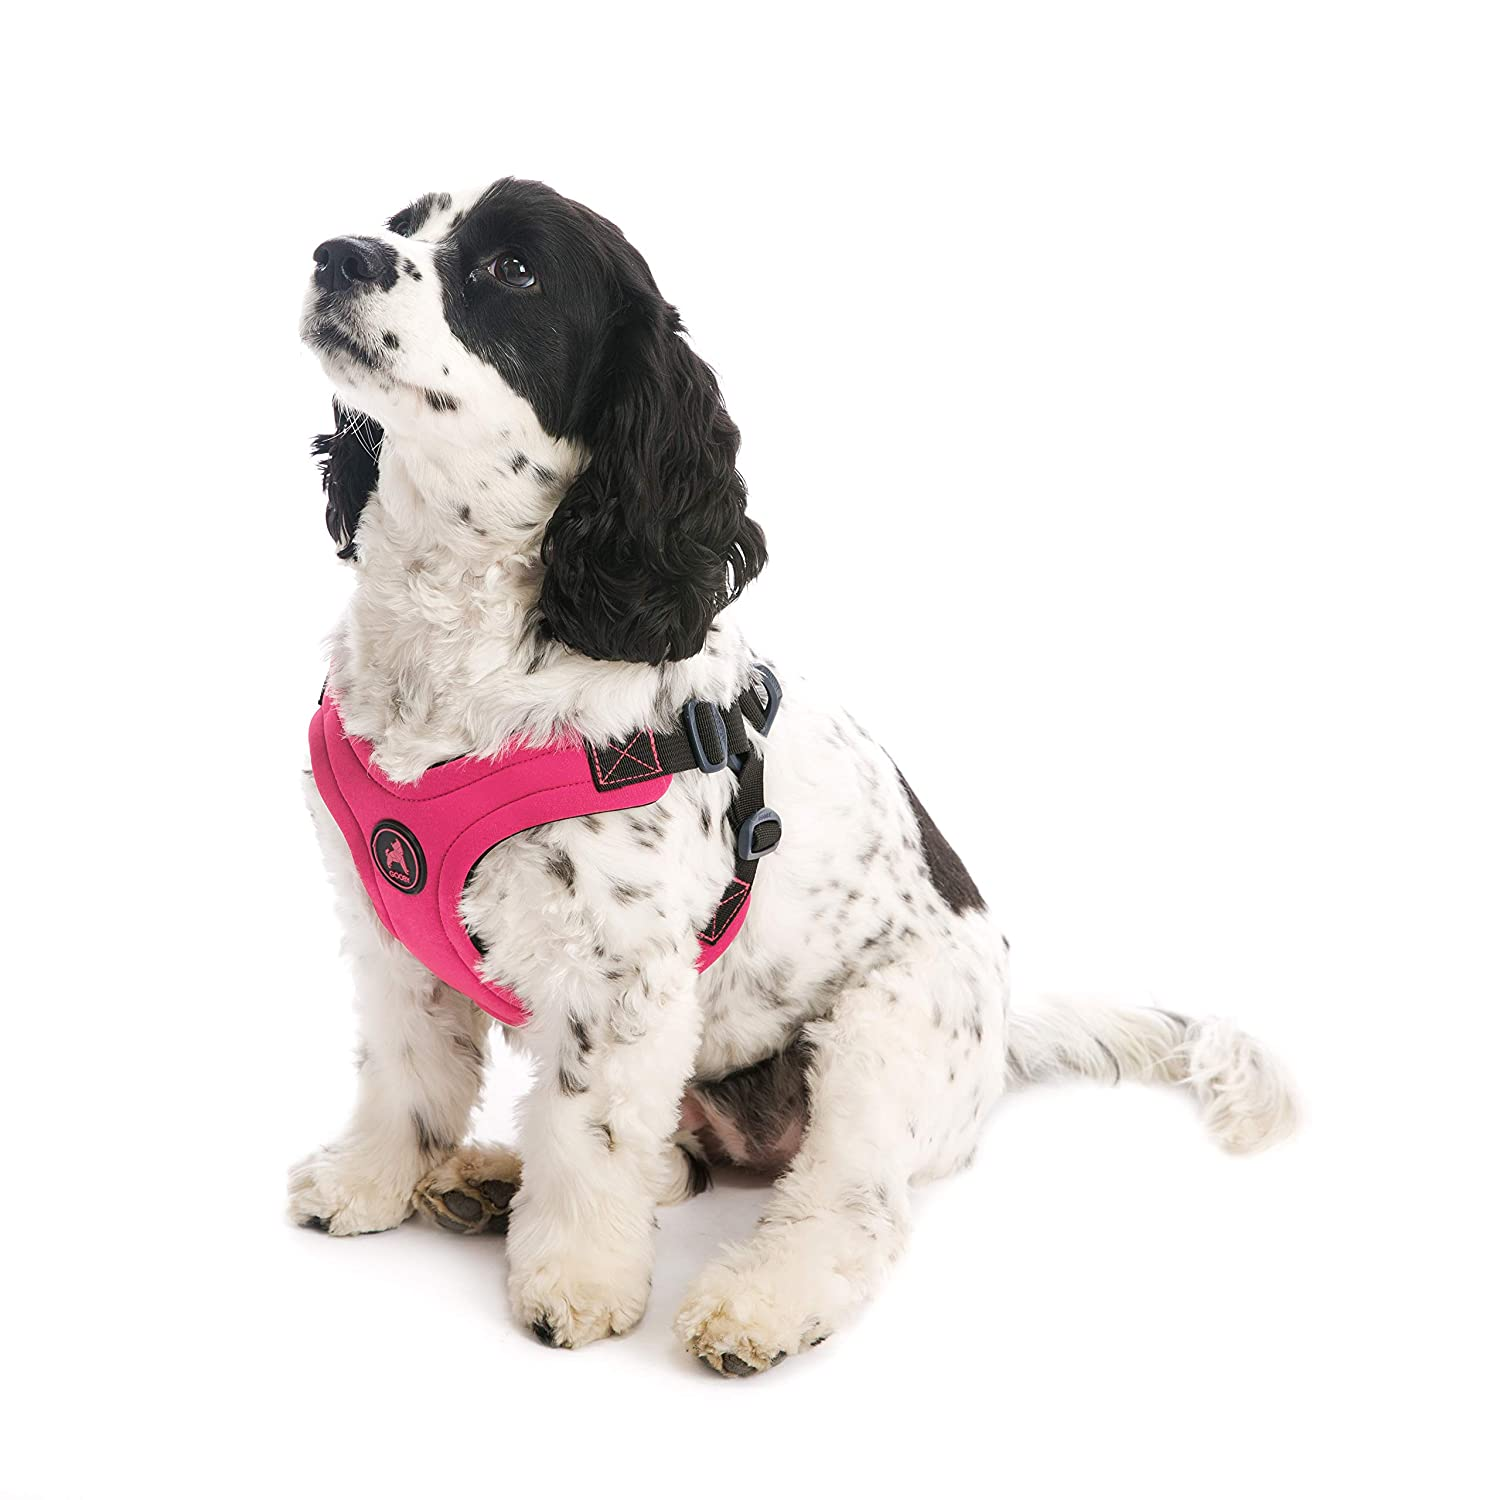 Gooby Escape Free Sport Dog Harness for Dogs That Pulls and Escapes, Pink, Large